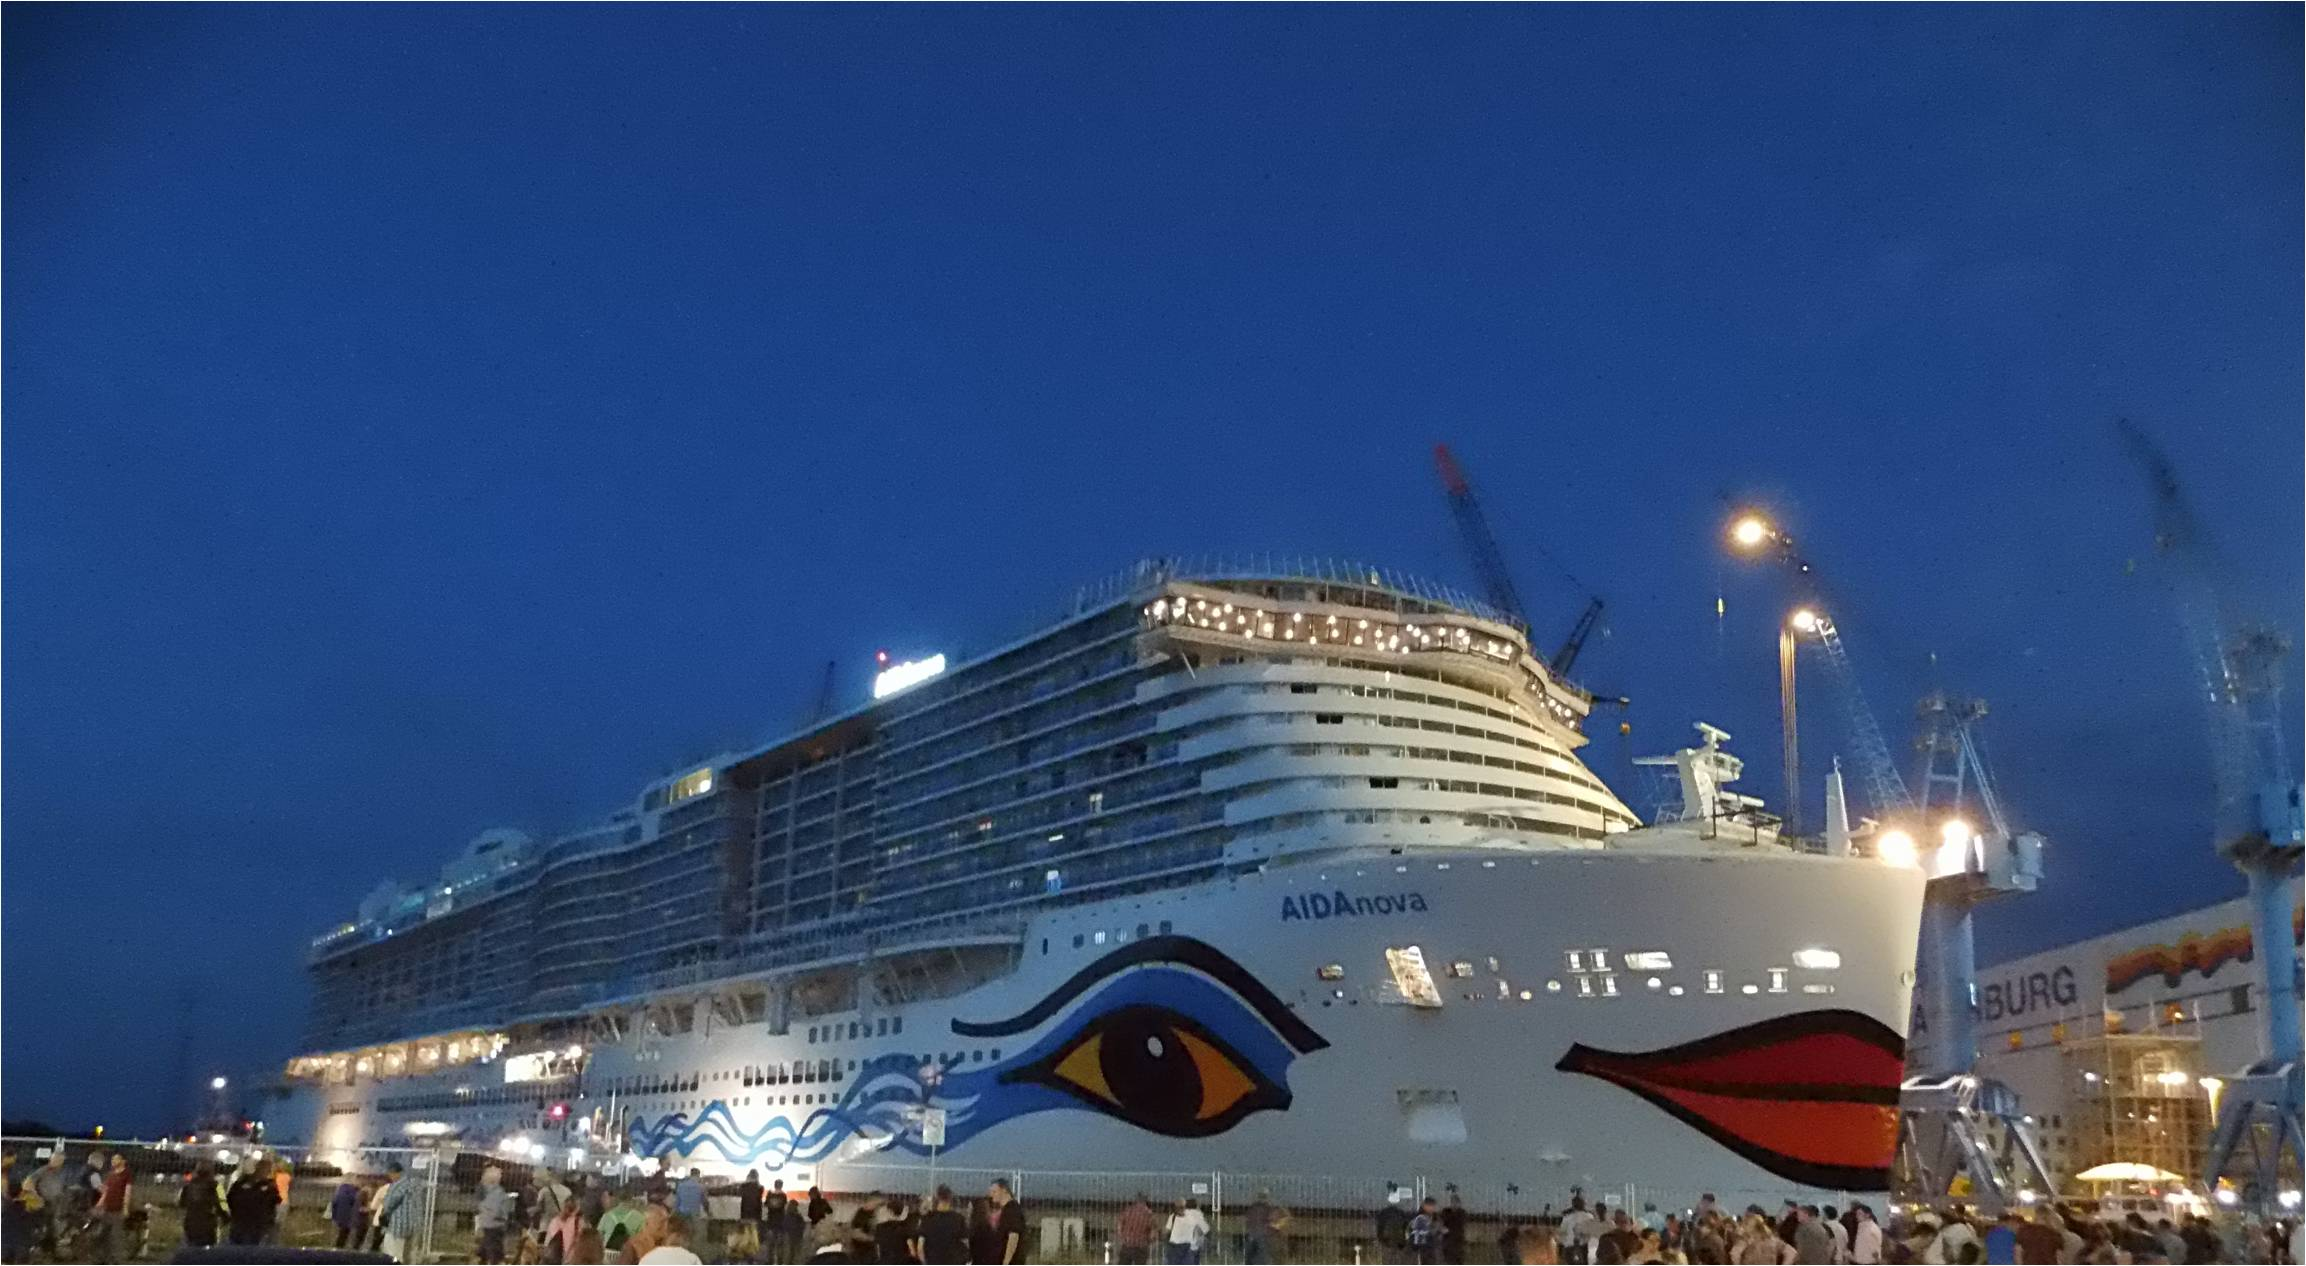 Excellence Class Cruise Ship Wikipedia